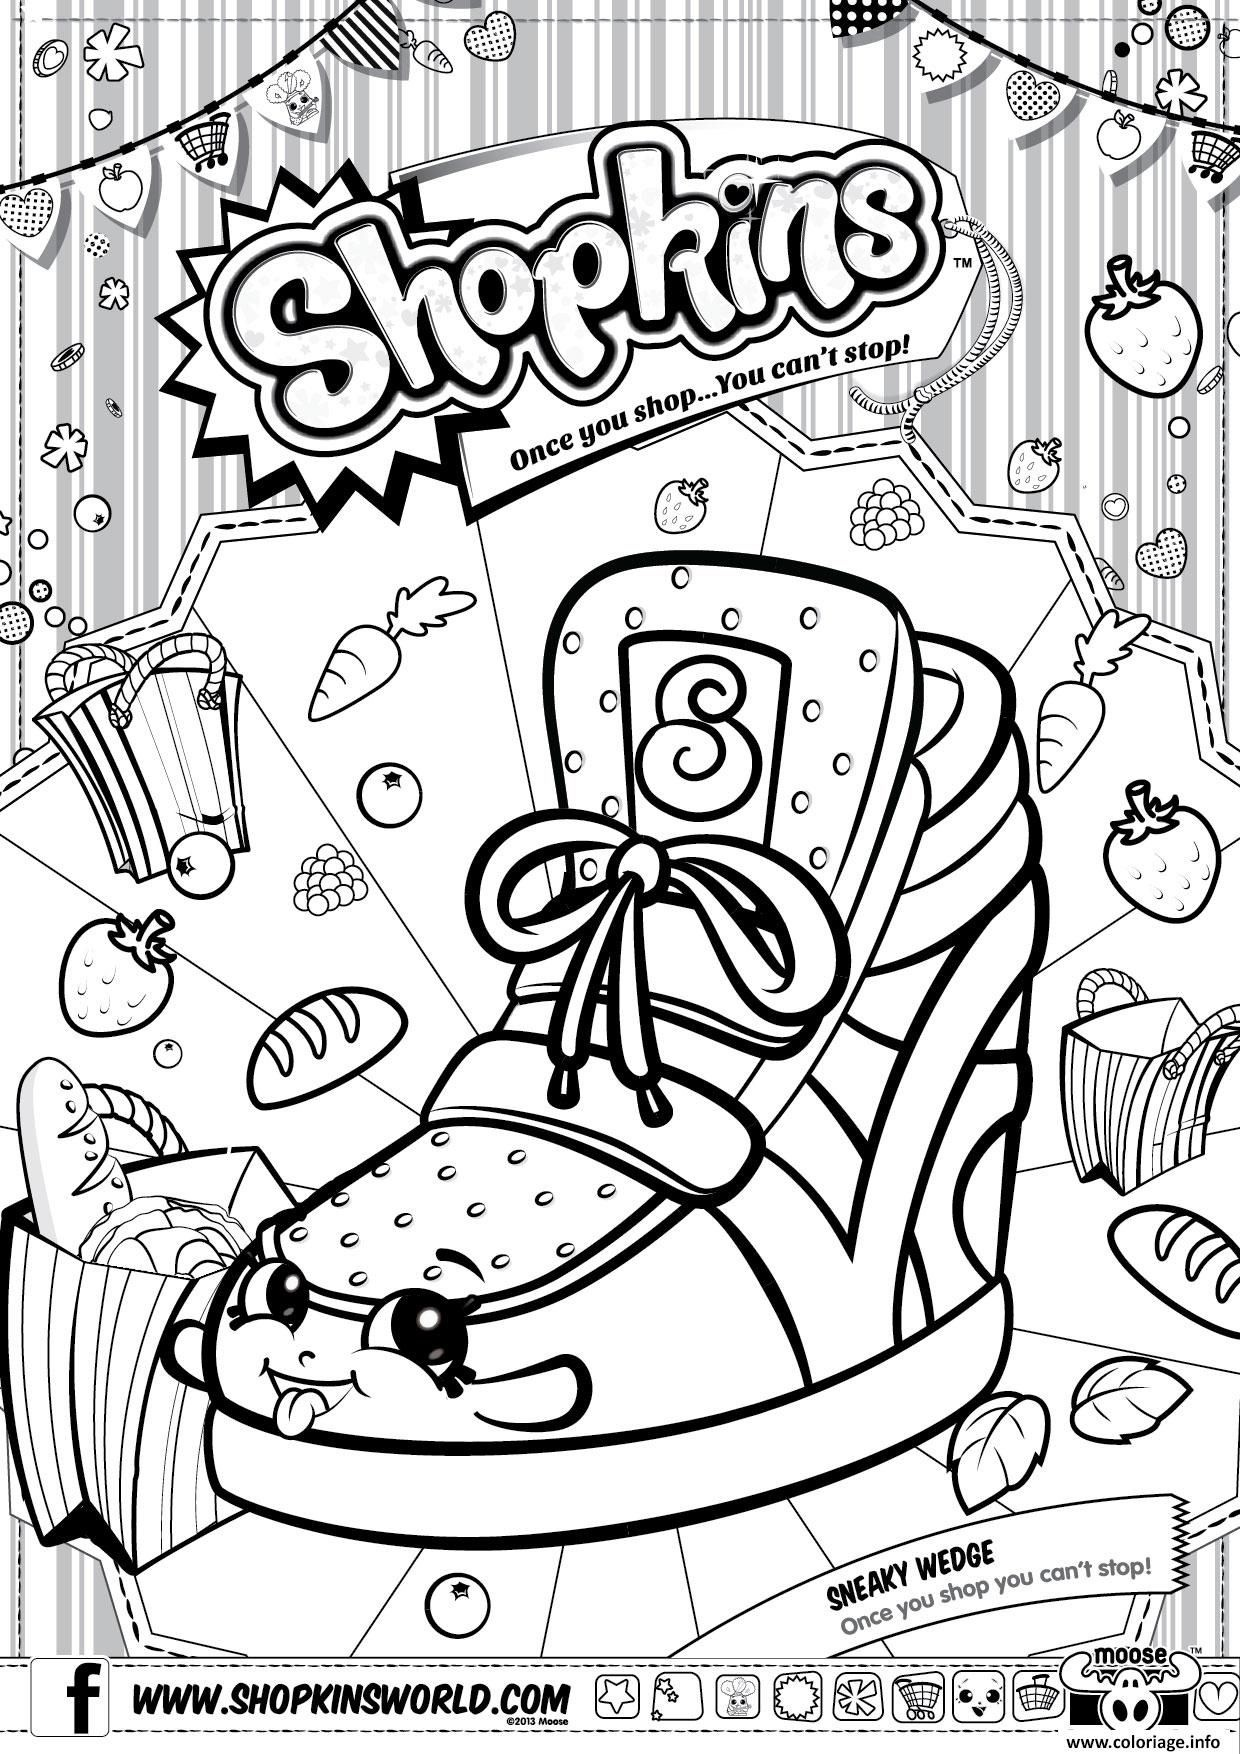 1240x1754 Shopkins Coloring Pages Popcorn Copy Shopkins Coloring Pages Page